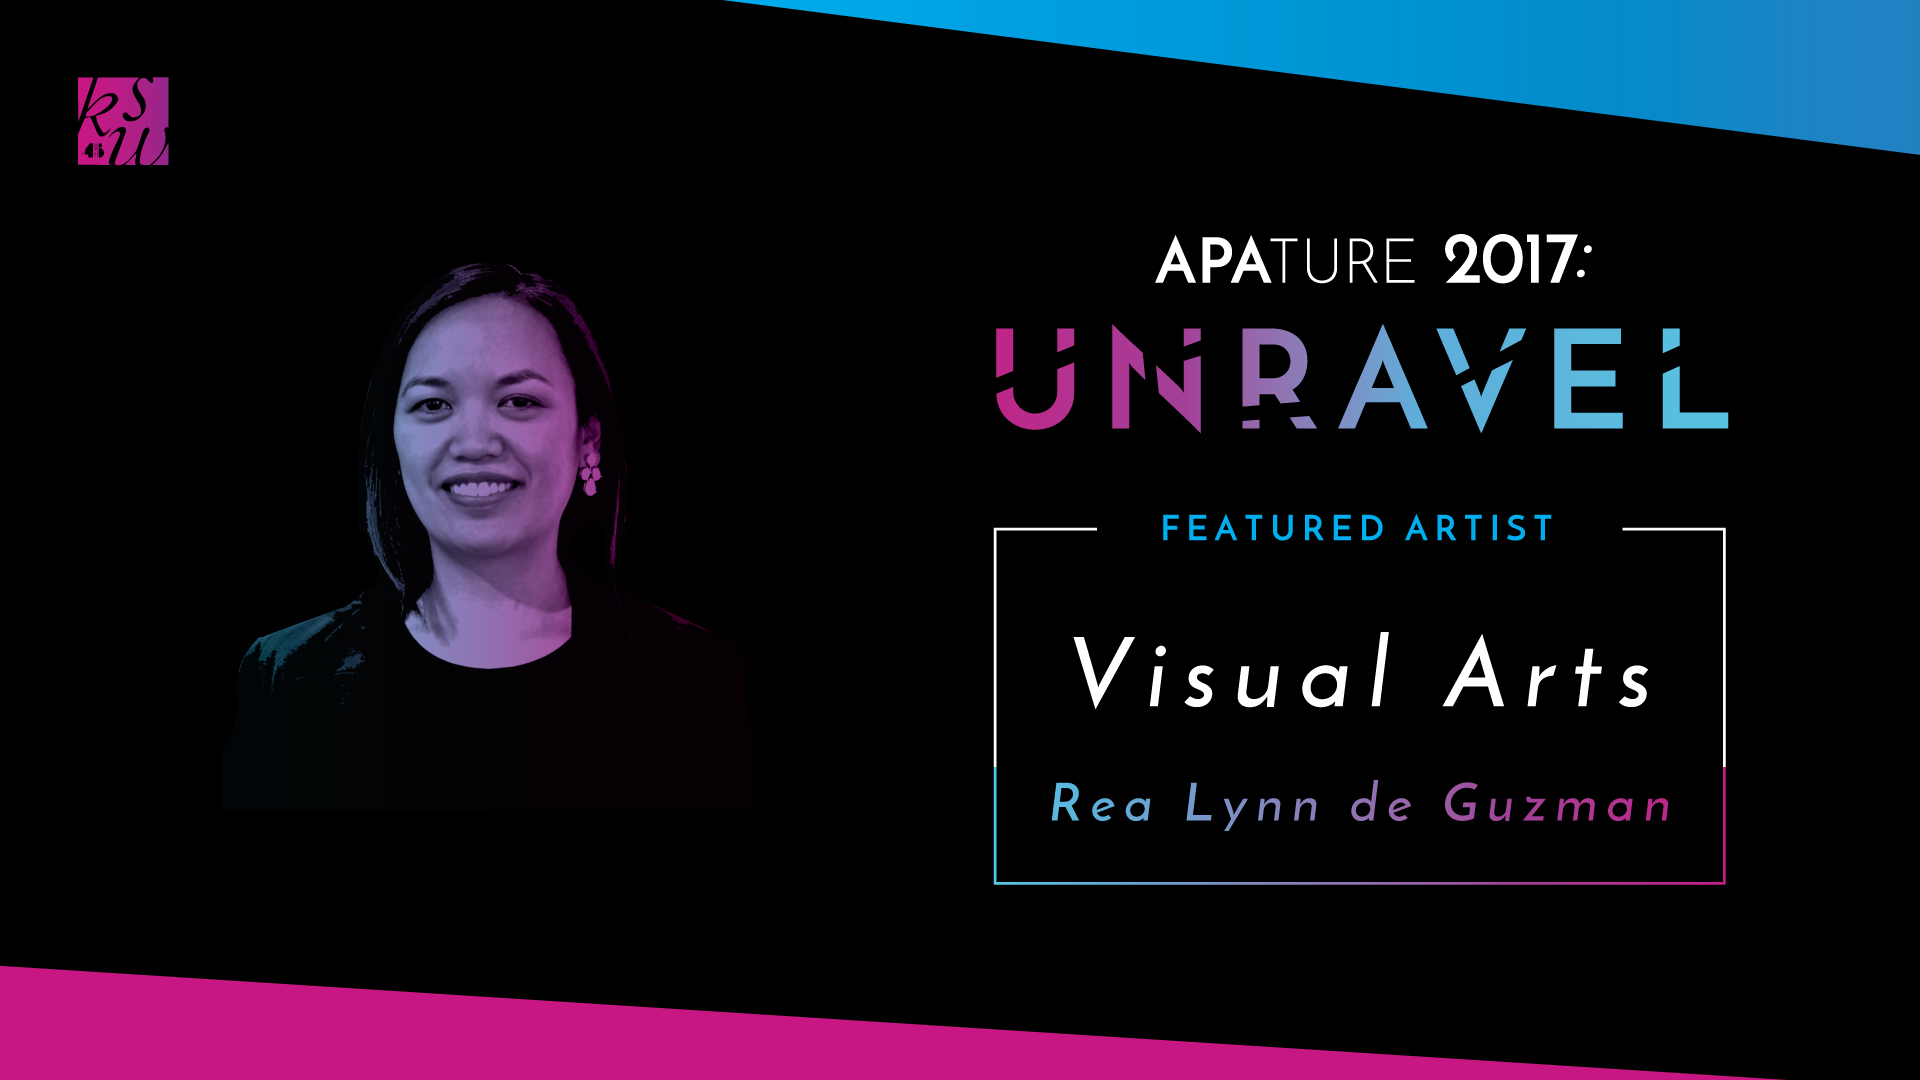 01_unravel_social_media_event_banner_visual_arts_2 (1).jpg